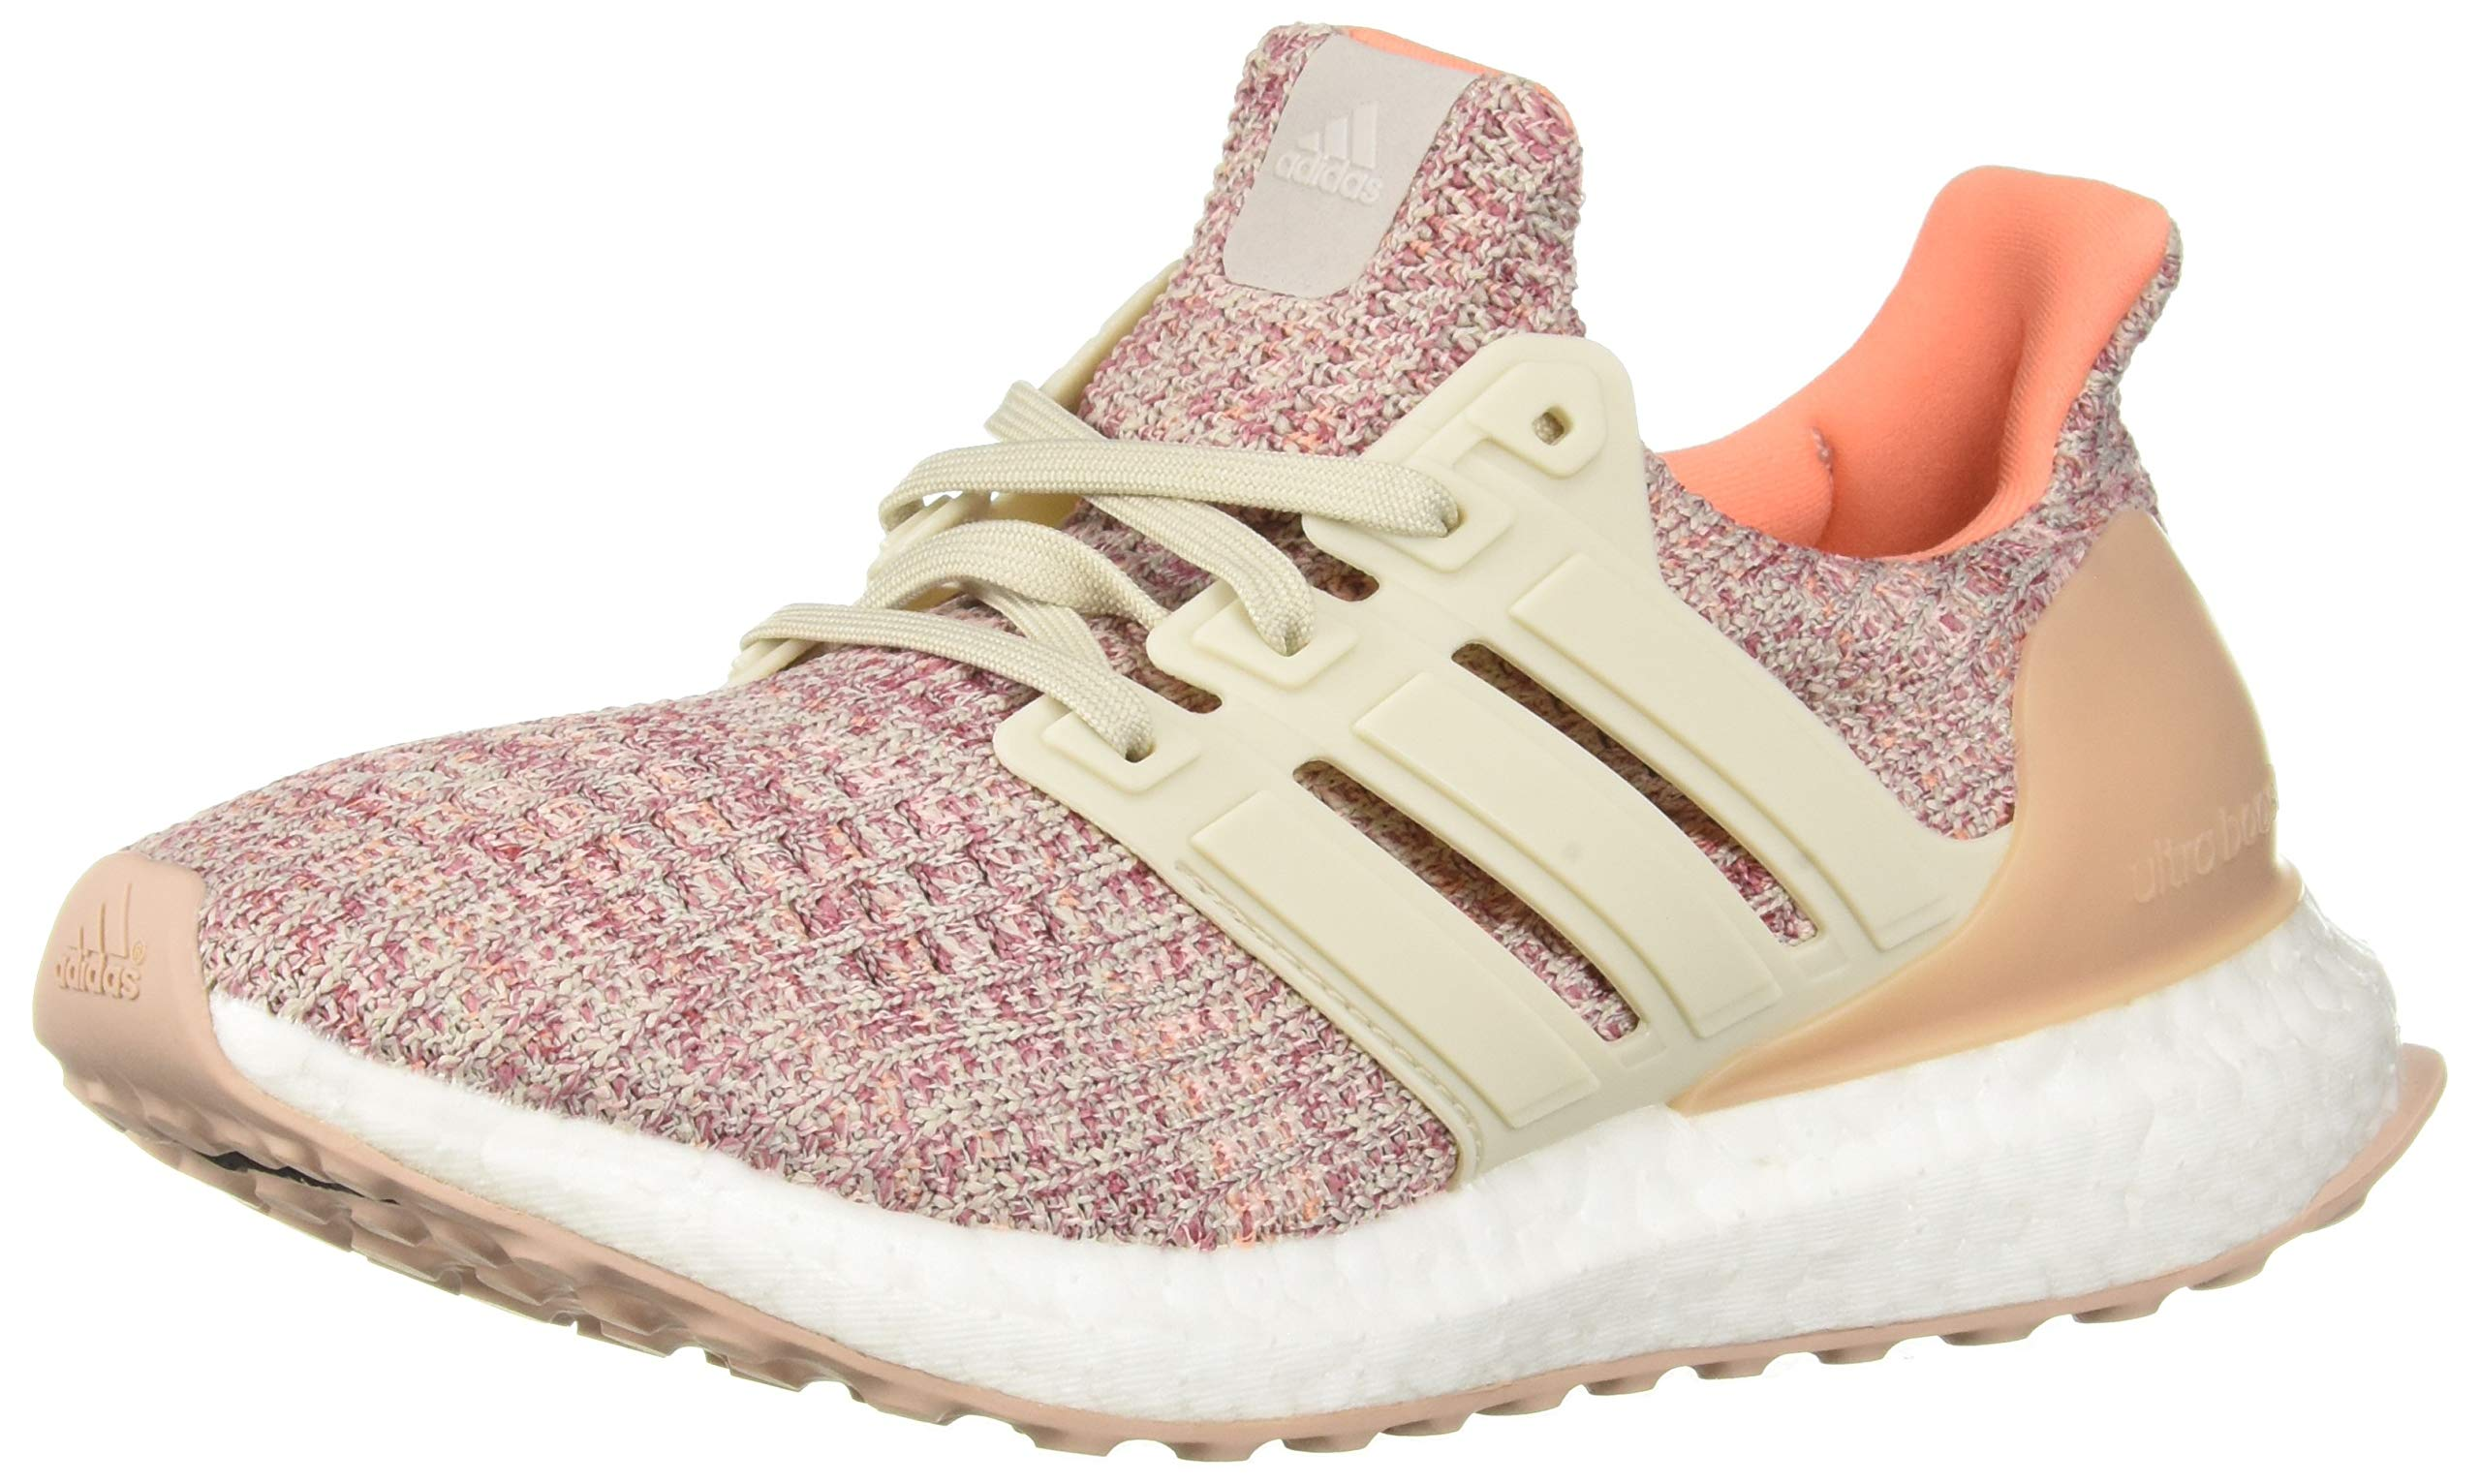 adidas Unisex Ultraboost, Trace Maroon/Clear Brown/Chalk Coral, 7 M US Big Kid by adidas